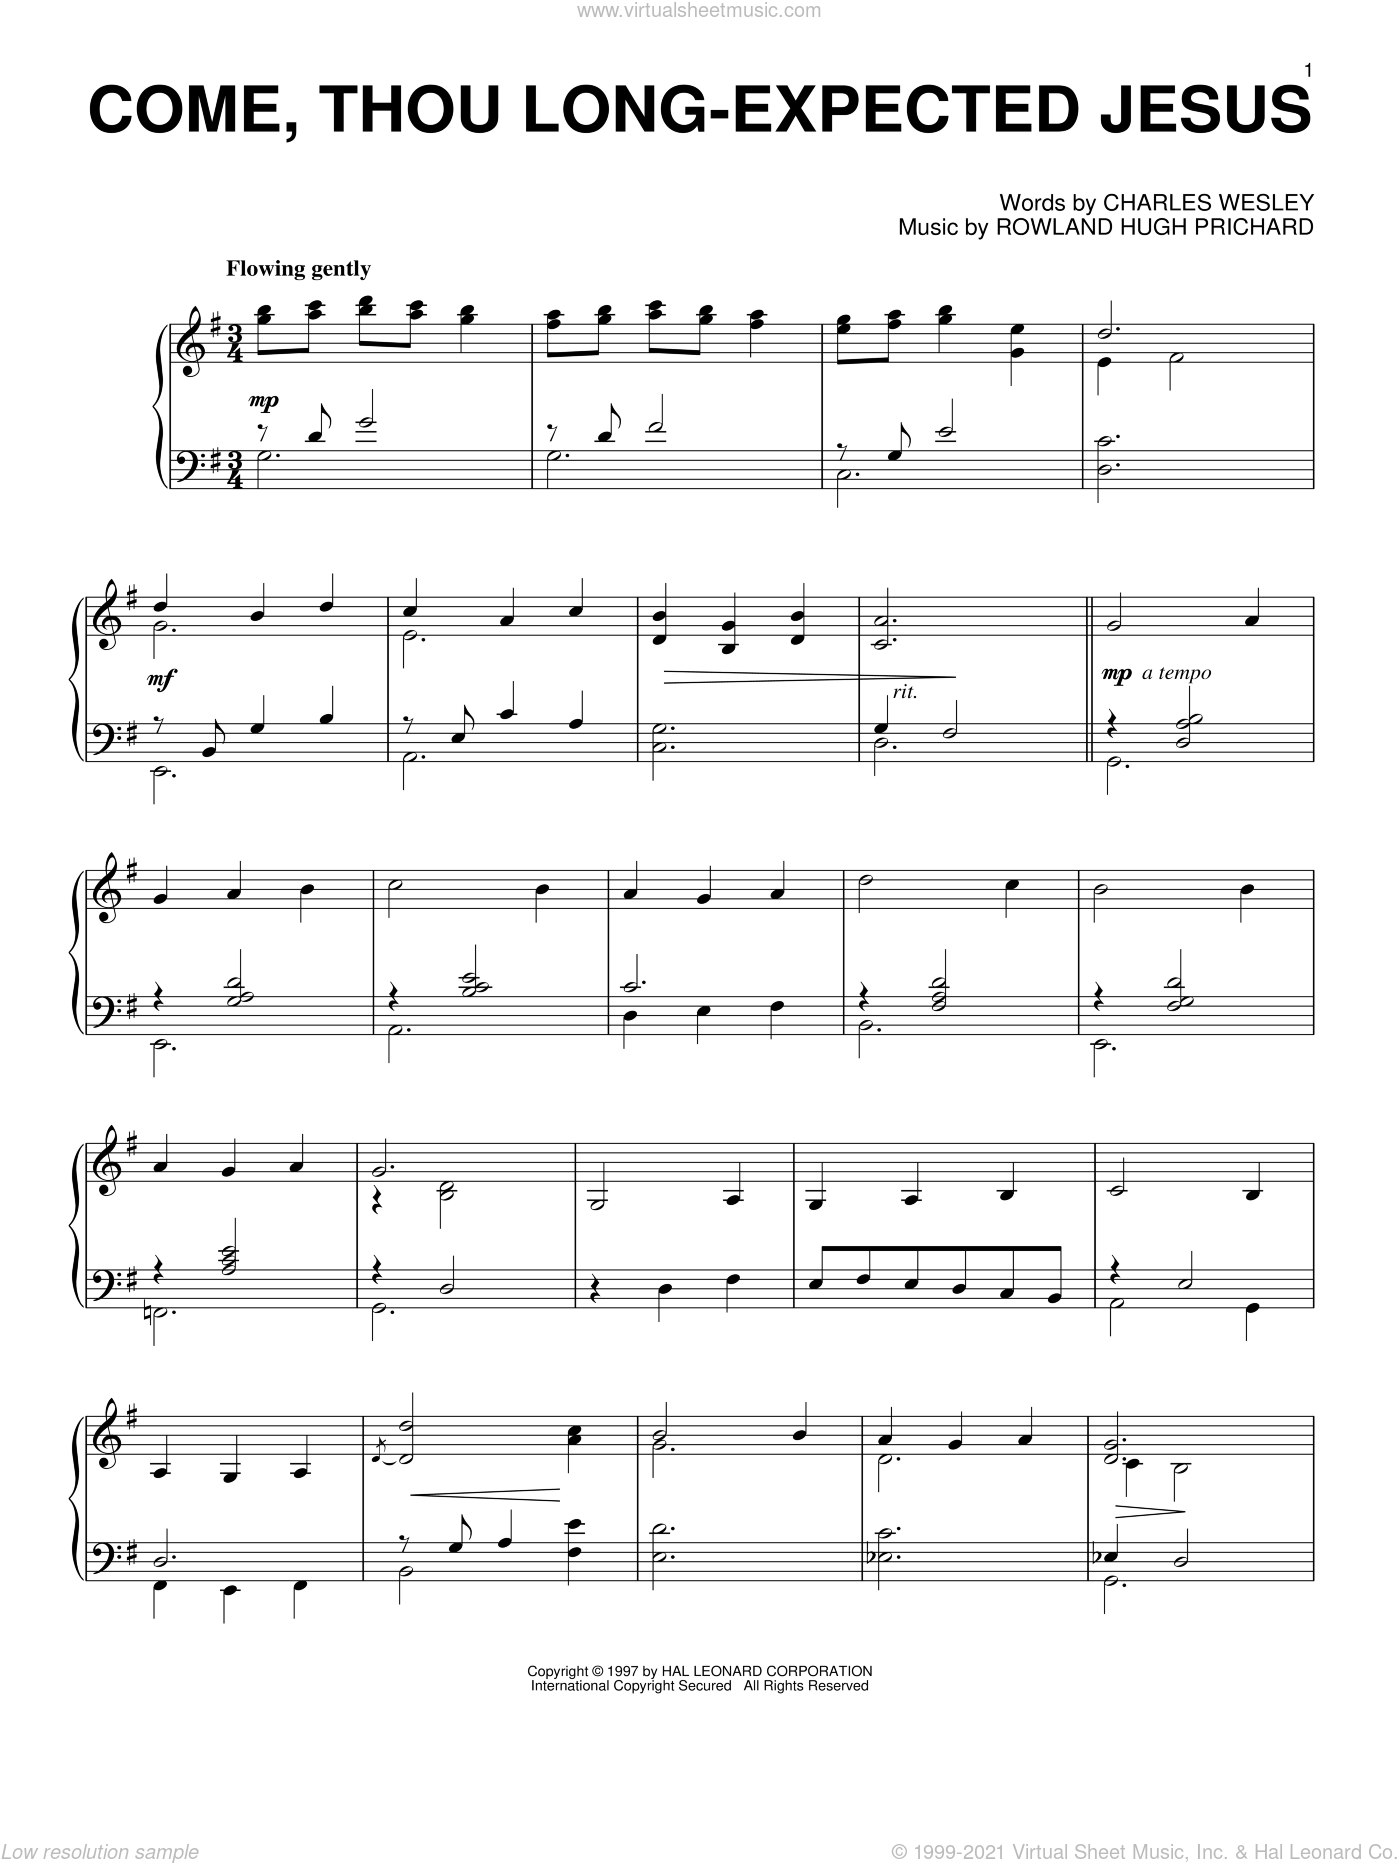 Come, Thou Long-Expected Jesus sheet music for piano solo by Charles Wesley